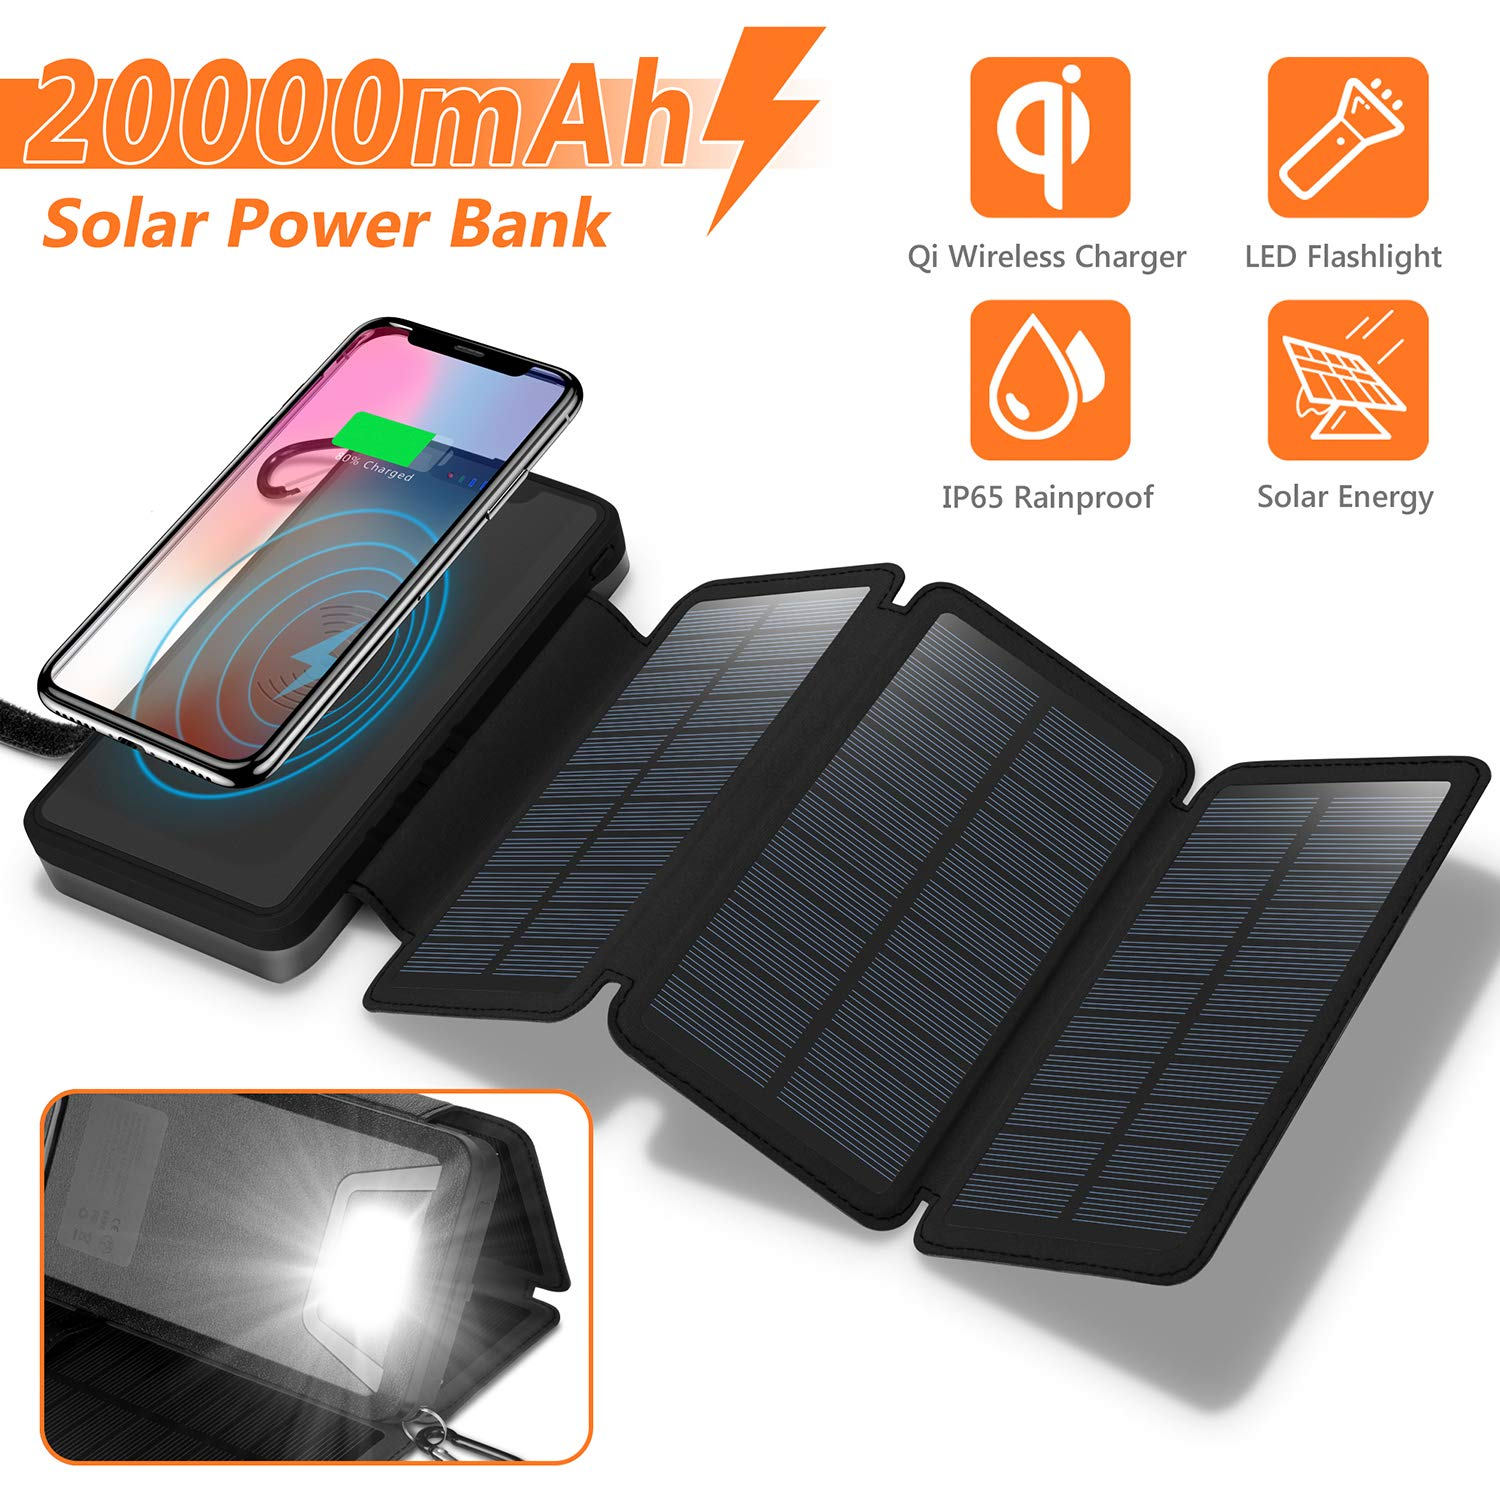 Solar Charger 20000mAh, 4.5W Qi Wireless Charger Portable Power Bank External Battery Back with 3 Solar Panels, Flashlight, Dual 5V/2.1A USB Port, IP65 Rainproof for Camping Hiking Fishing(Black) by NEXGADGET